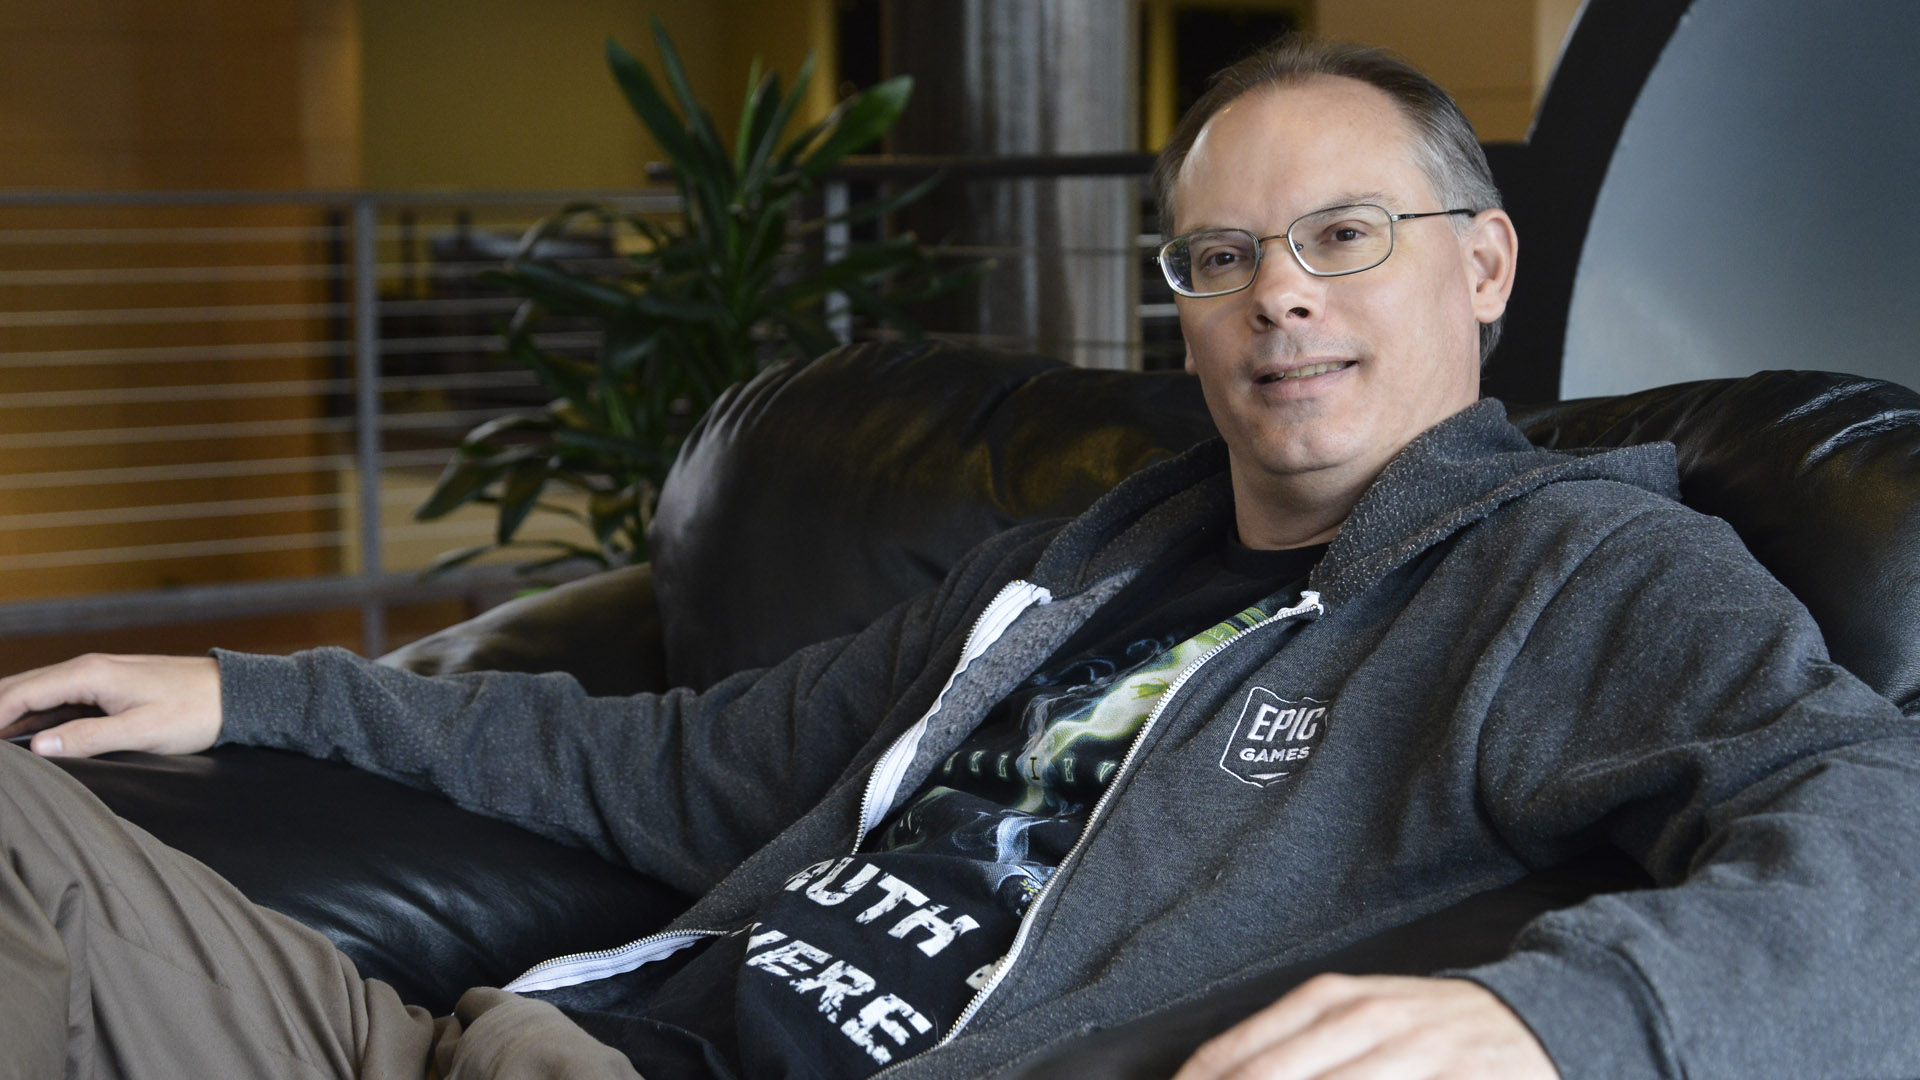 Epic Games Tim Sweeney On Fortnite The Company S Very Own Victory